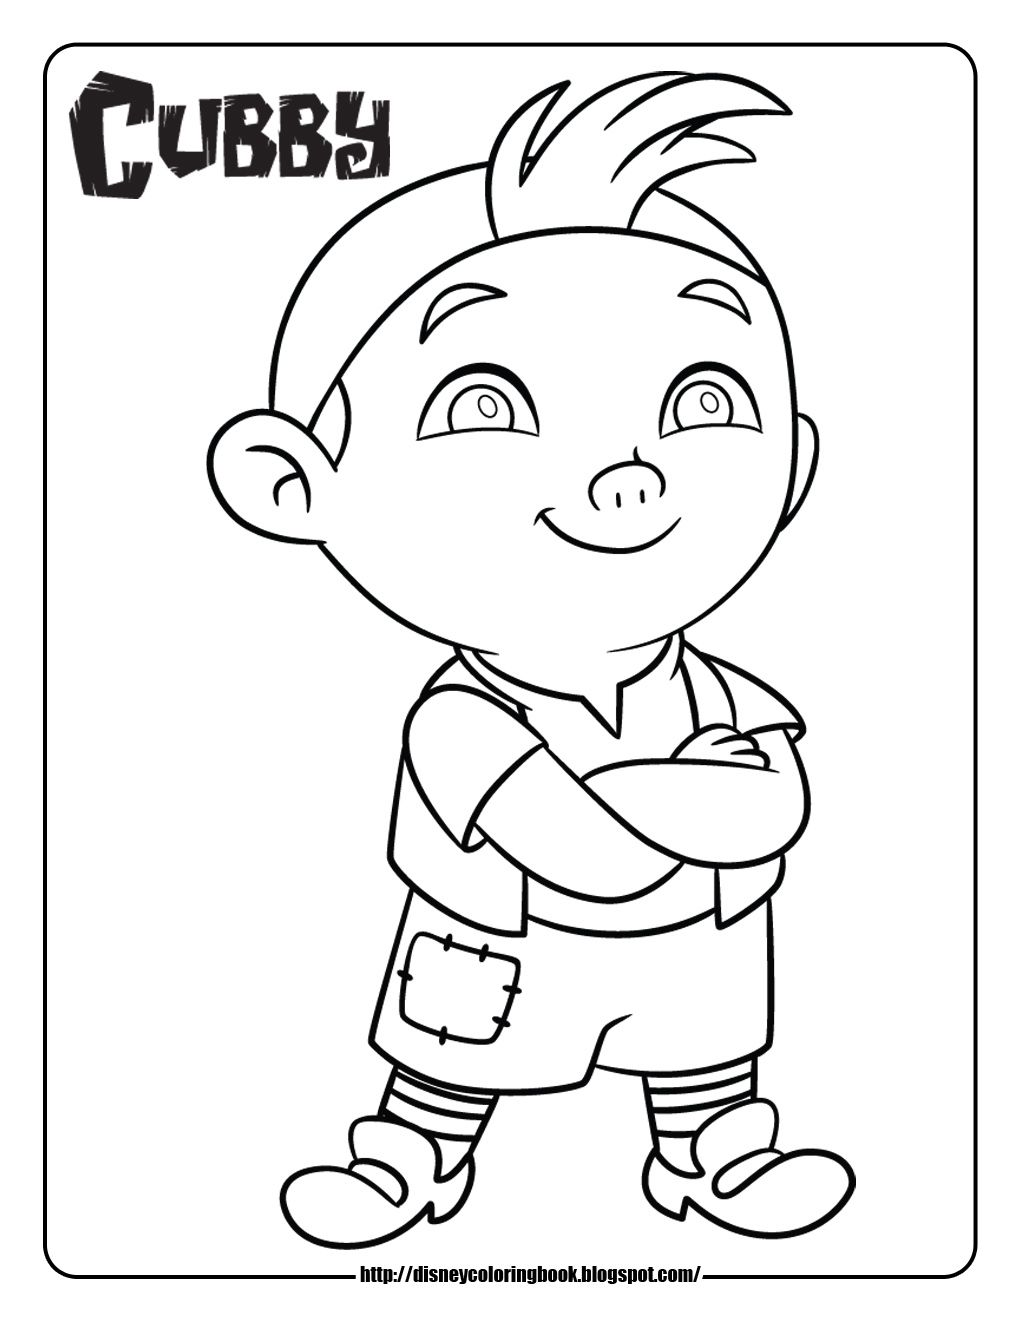 disney coloring pages and sheets for kids jake and the neverland jake and the neverland pirates coloring pages bucky jake and the neverland pirates coloring pages printable